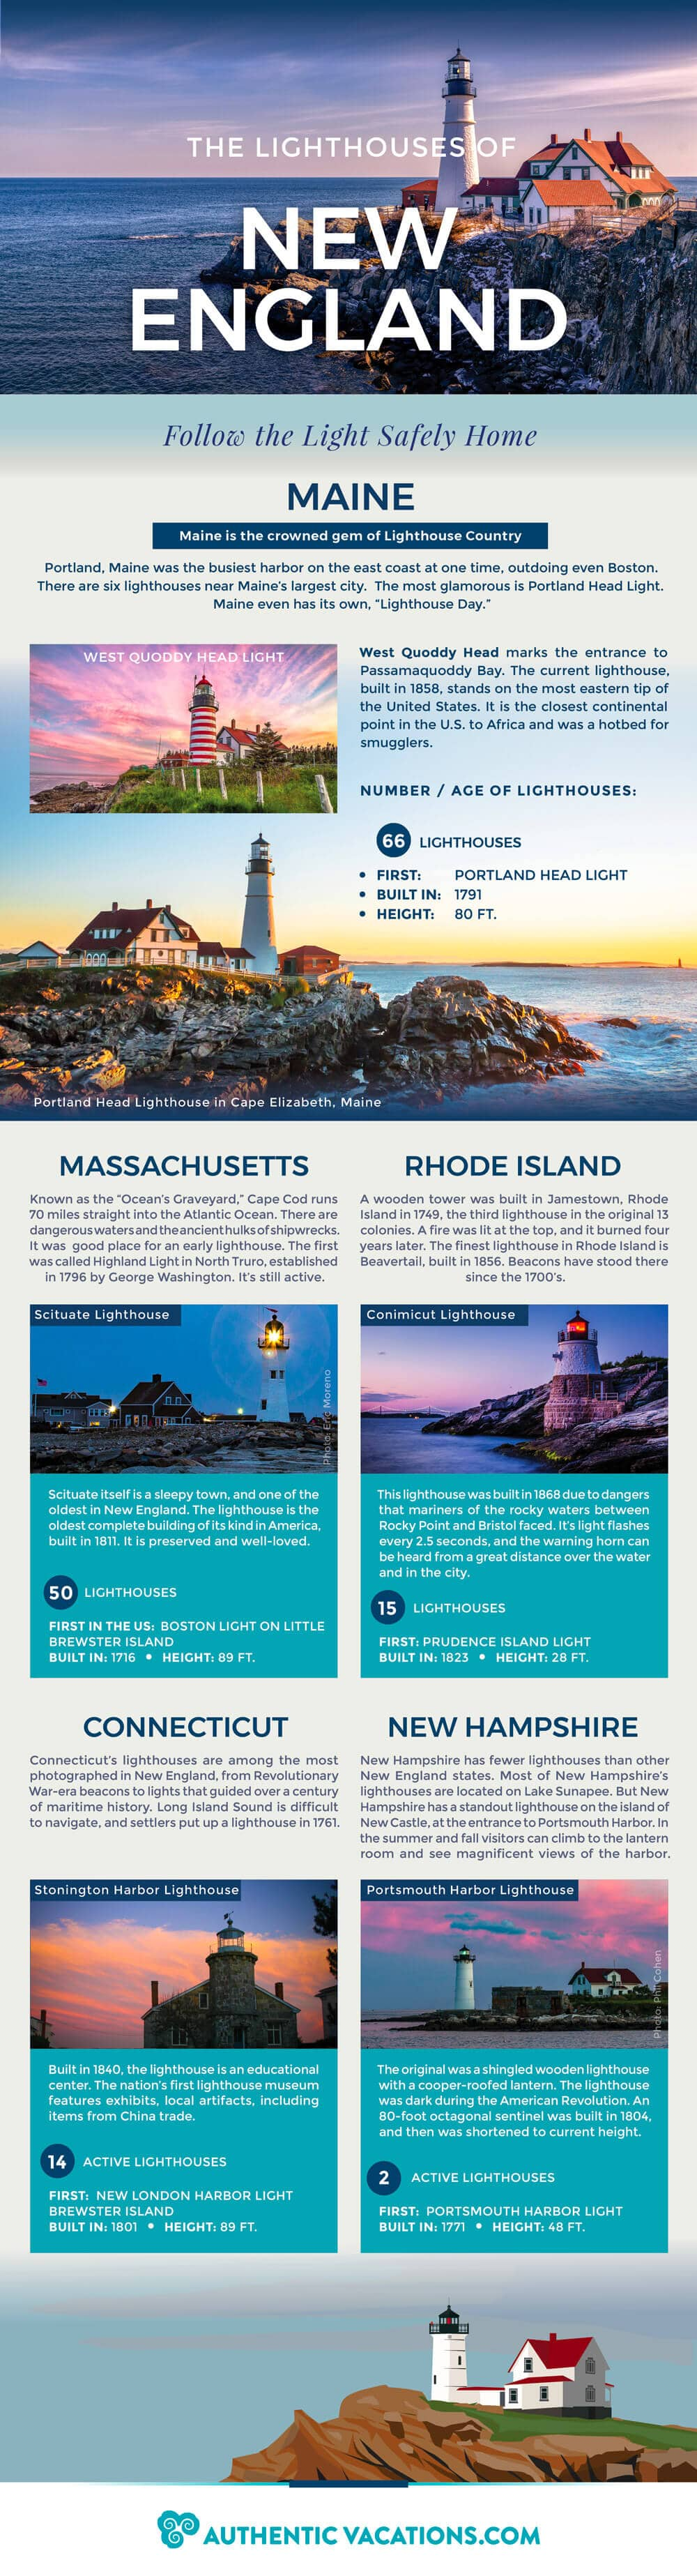 New England's Luminous Lighthouses